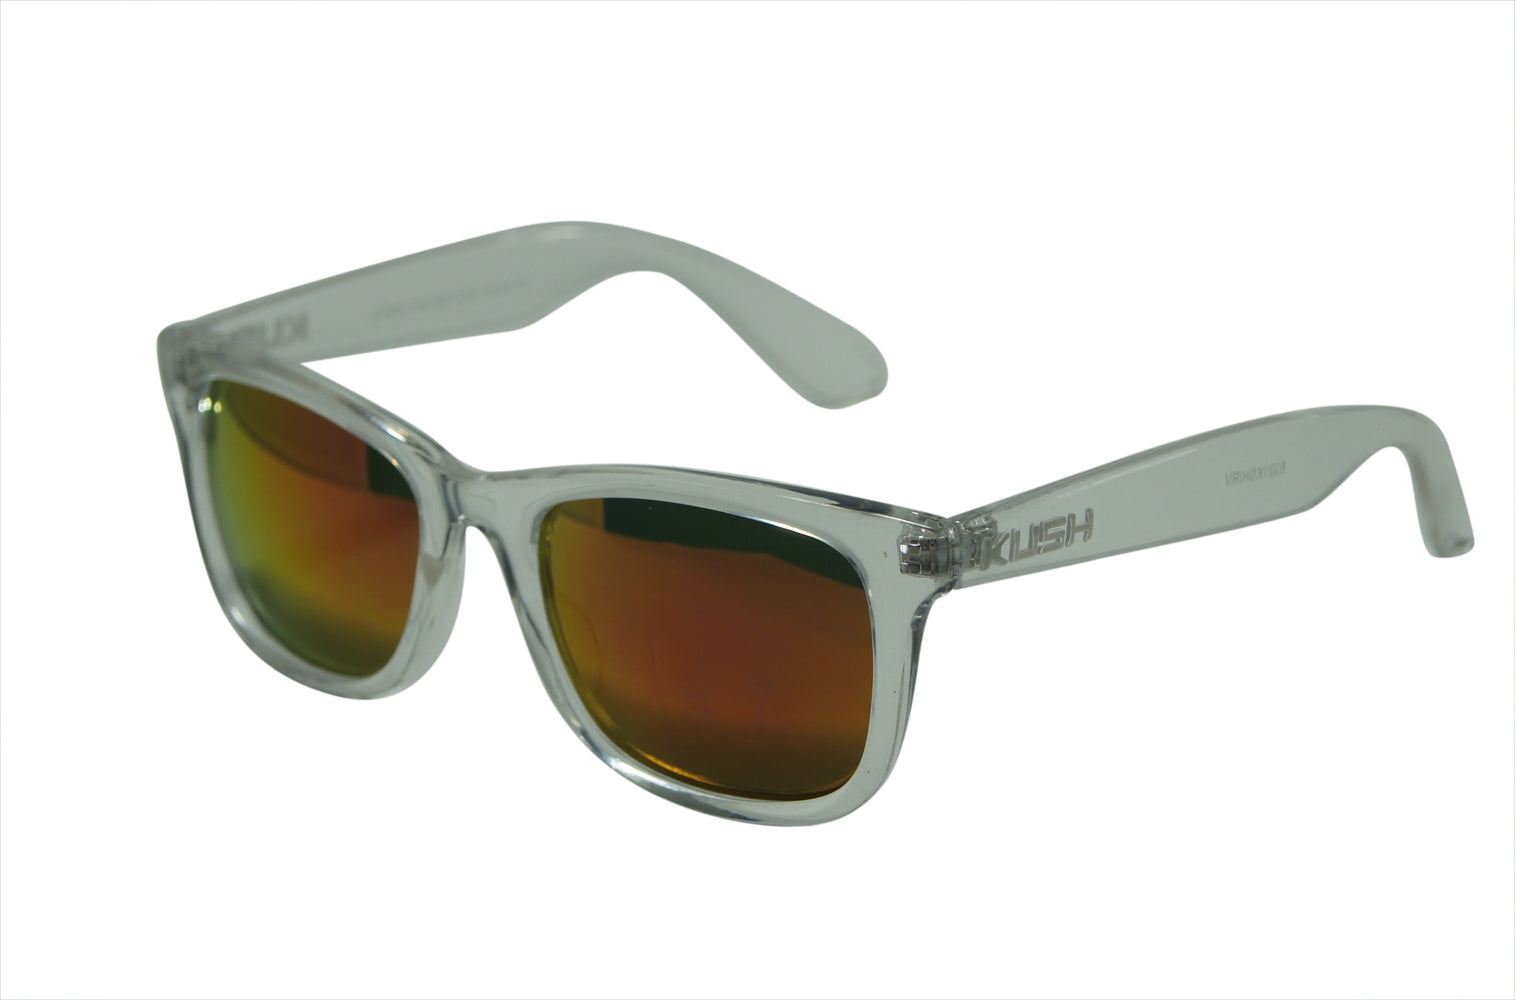 Walter Men's Horn Rimmed Beach Flash Color Mirror Lens Sunglasses 6321